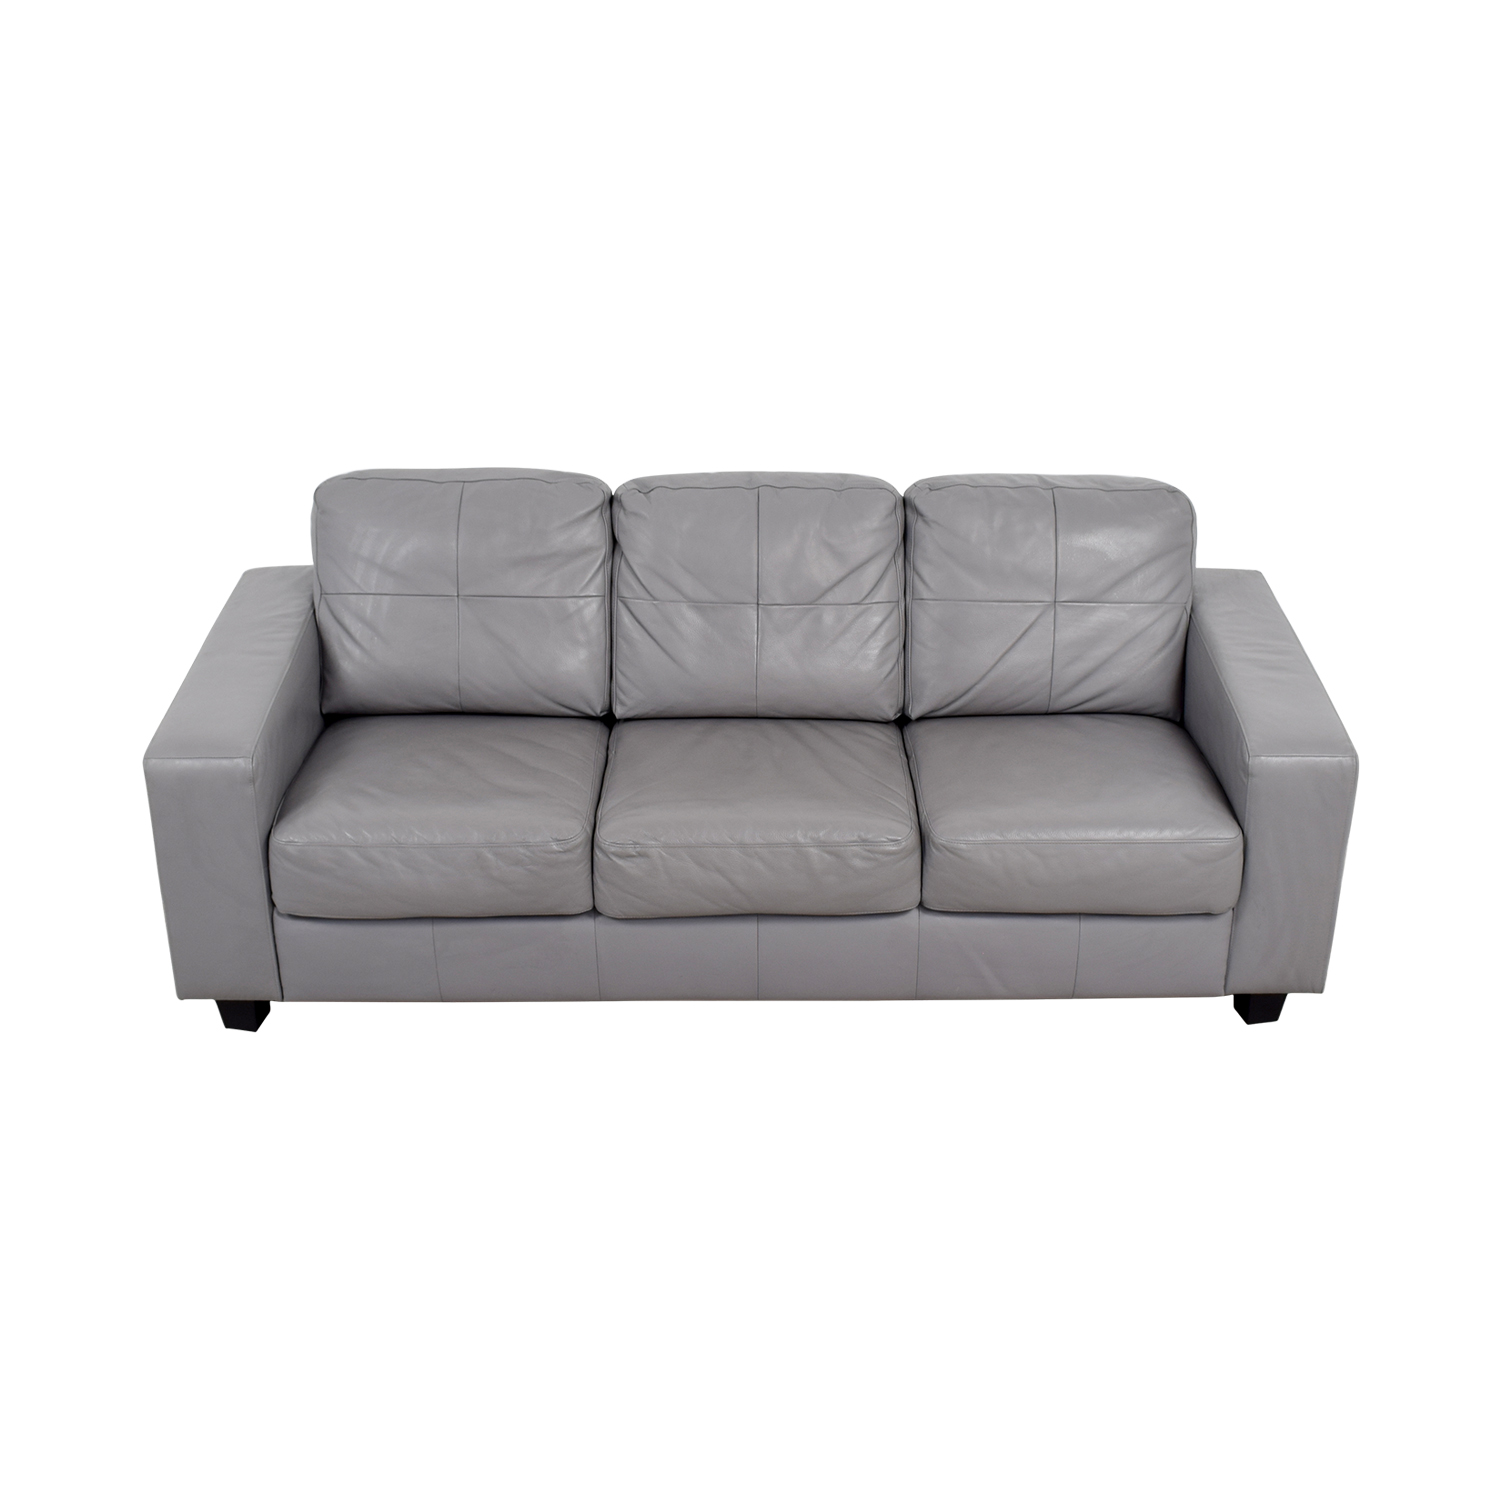 IKEA IKEA Skogaby Light Grey Sofa dimensions